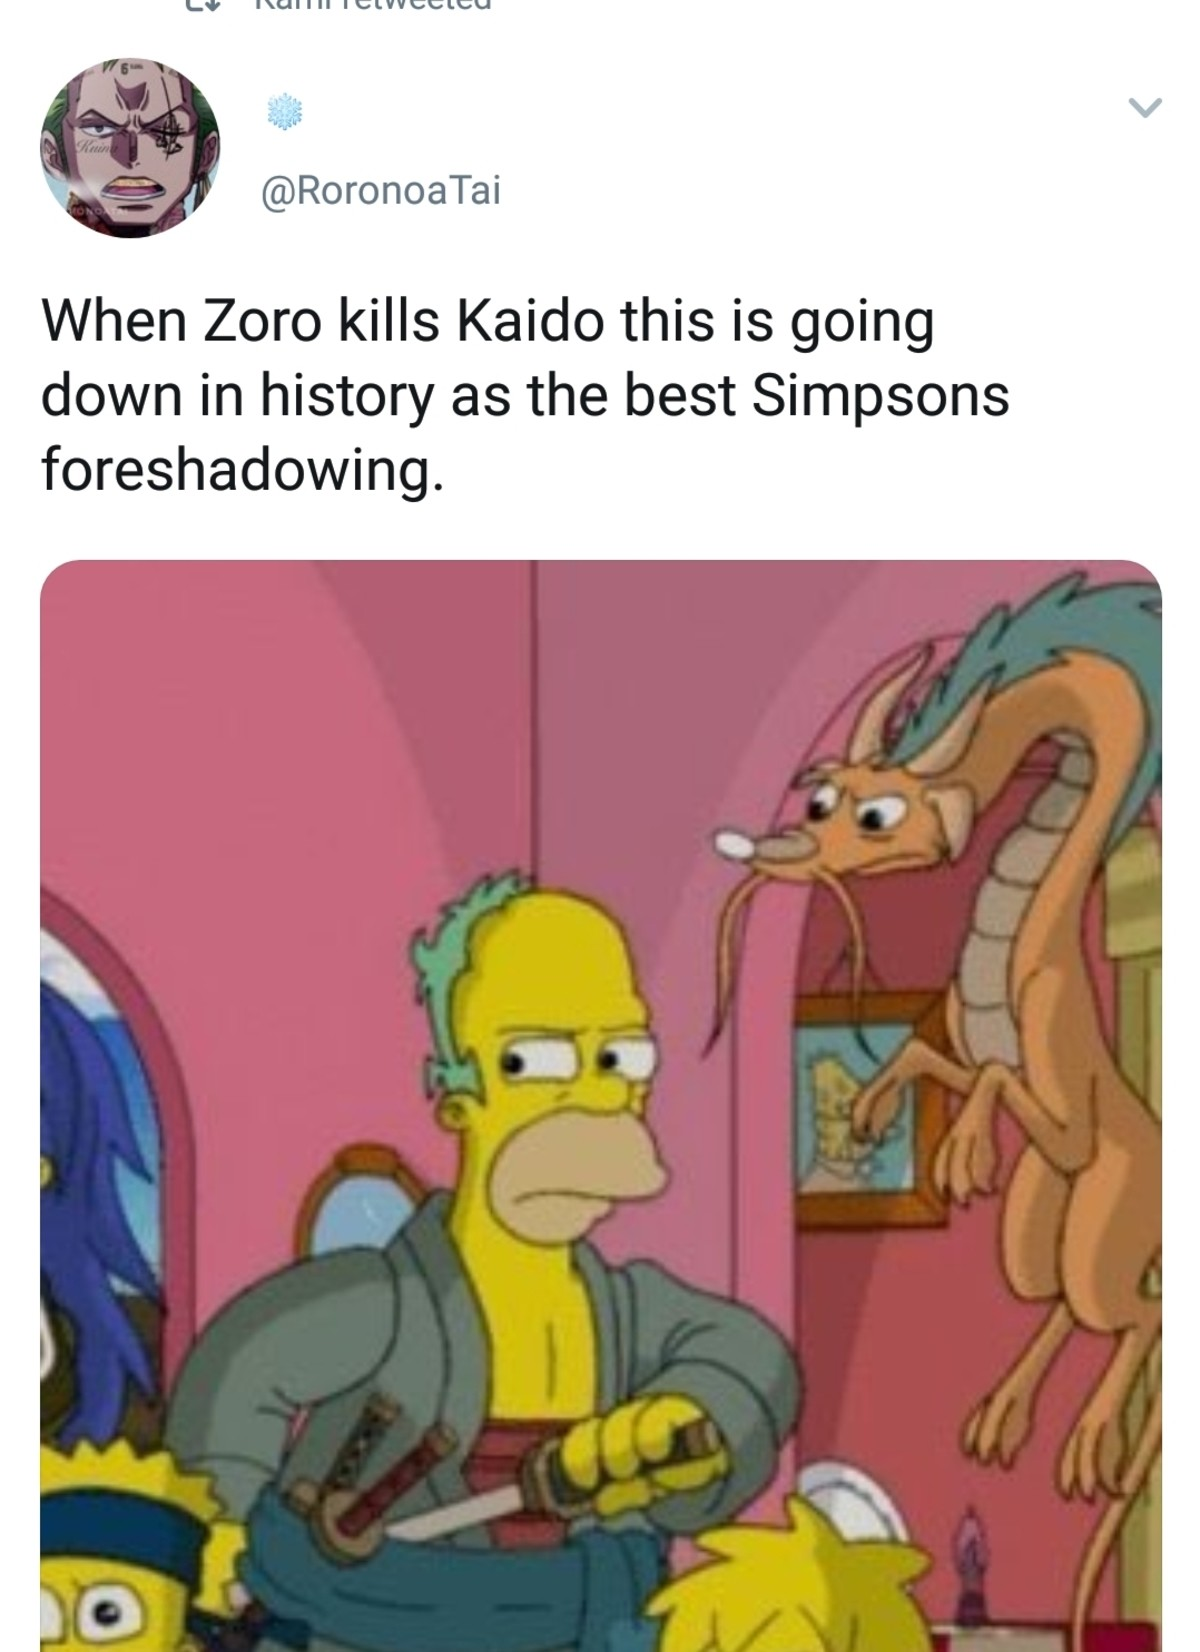 Zoro himson. join list: onepiece (236 subs)Mention History.. Bruh no way is this real I've been binging Simpson's the last few weeks and I'm sure I would've caught this